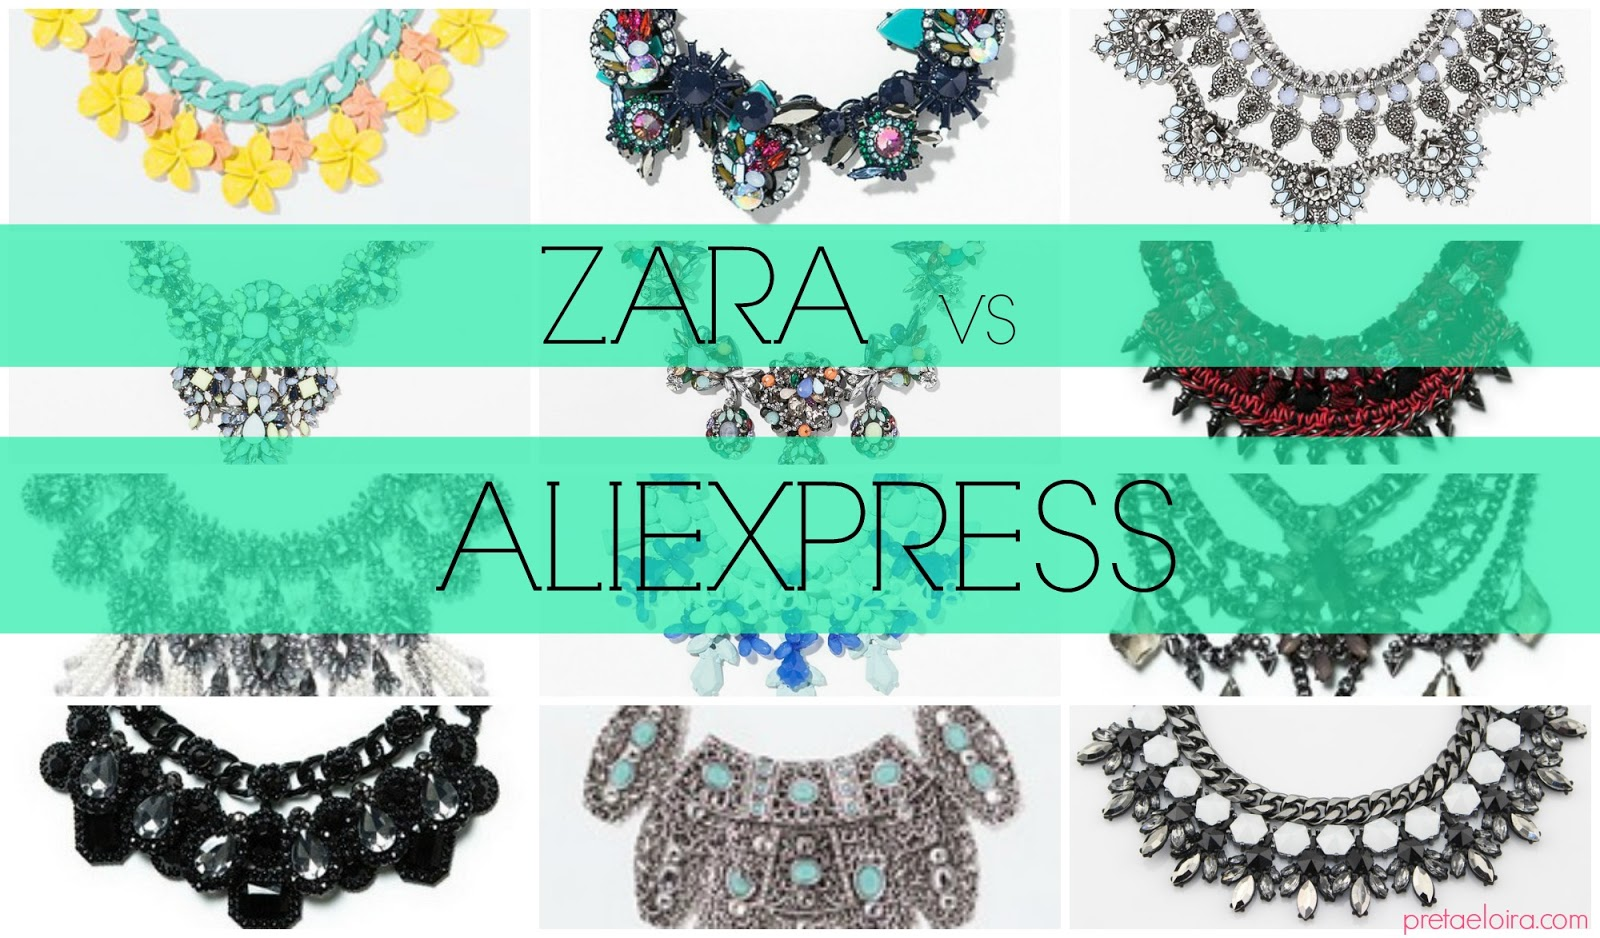 complementos: INDITEX VS ALIEXPRESS 7